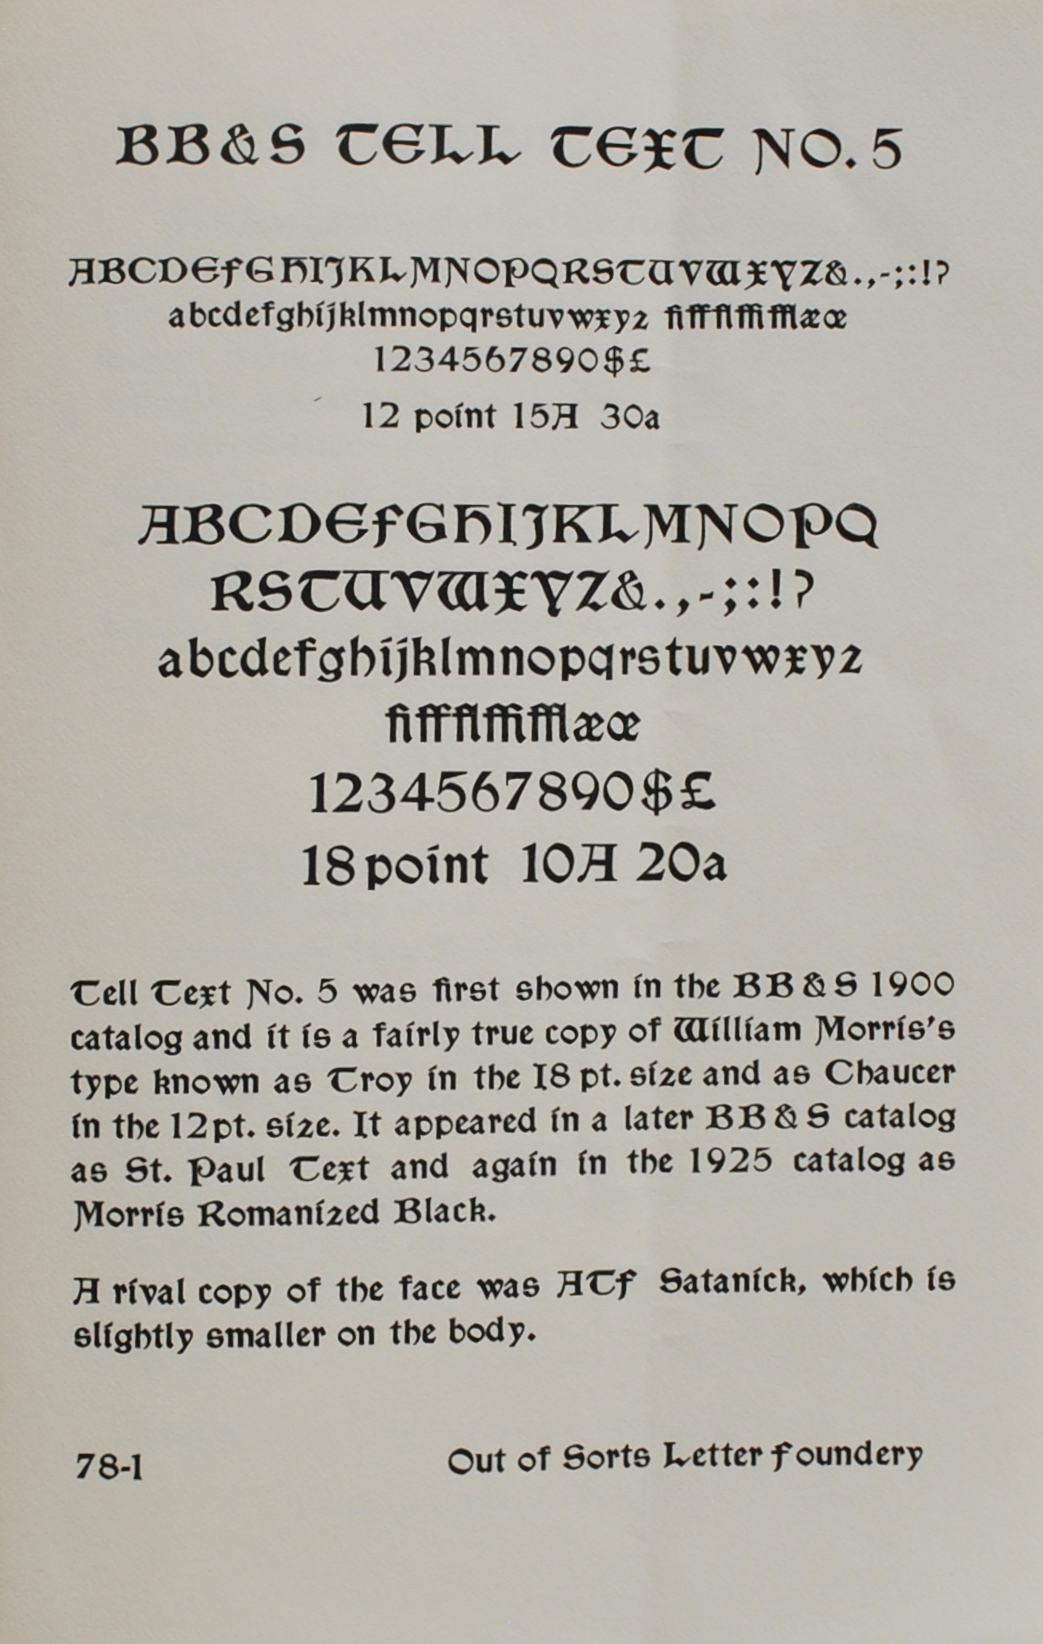 Image for Smithsonian Type Revivals,  BB&S Tell Text No. 5,  Type offerings, cast from the Smithsonian's matrix collection in association with the Out of Sorts Press and Letter Foundery, Larchmont, N. Y.